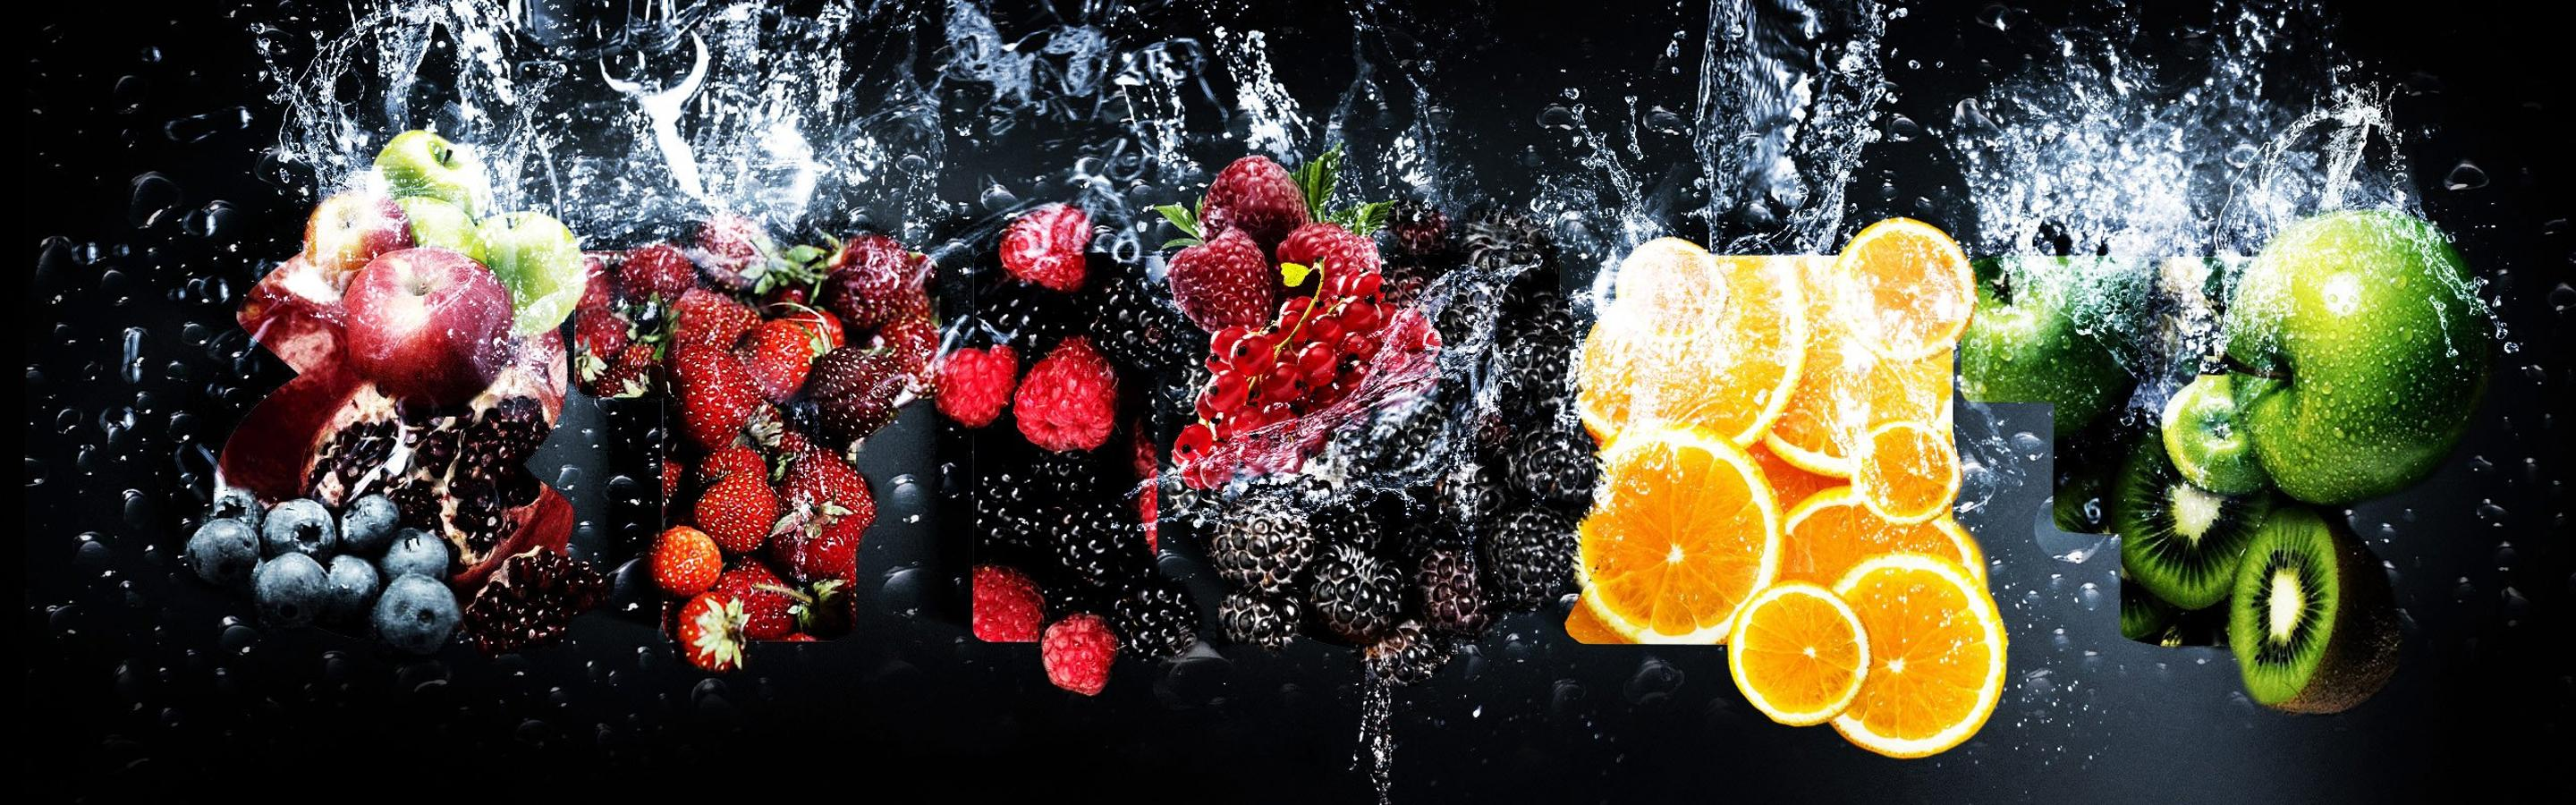 acura games with Fresh Fruits Under The Cold Water Hd Summer Time 2880x900 on Many Autumn Products Fruits Wallpaper 5120x2880 in addition Rainbow Over The Blue Sky together with Twitter Can Possibly Determine How Successful A Movie Is 1685921 also Brand And Logo Wallpaper Intel Logo 3840x2160 as well Paper Boat Ready To Go On The Ocean Hd Summer Wallpaper.